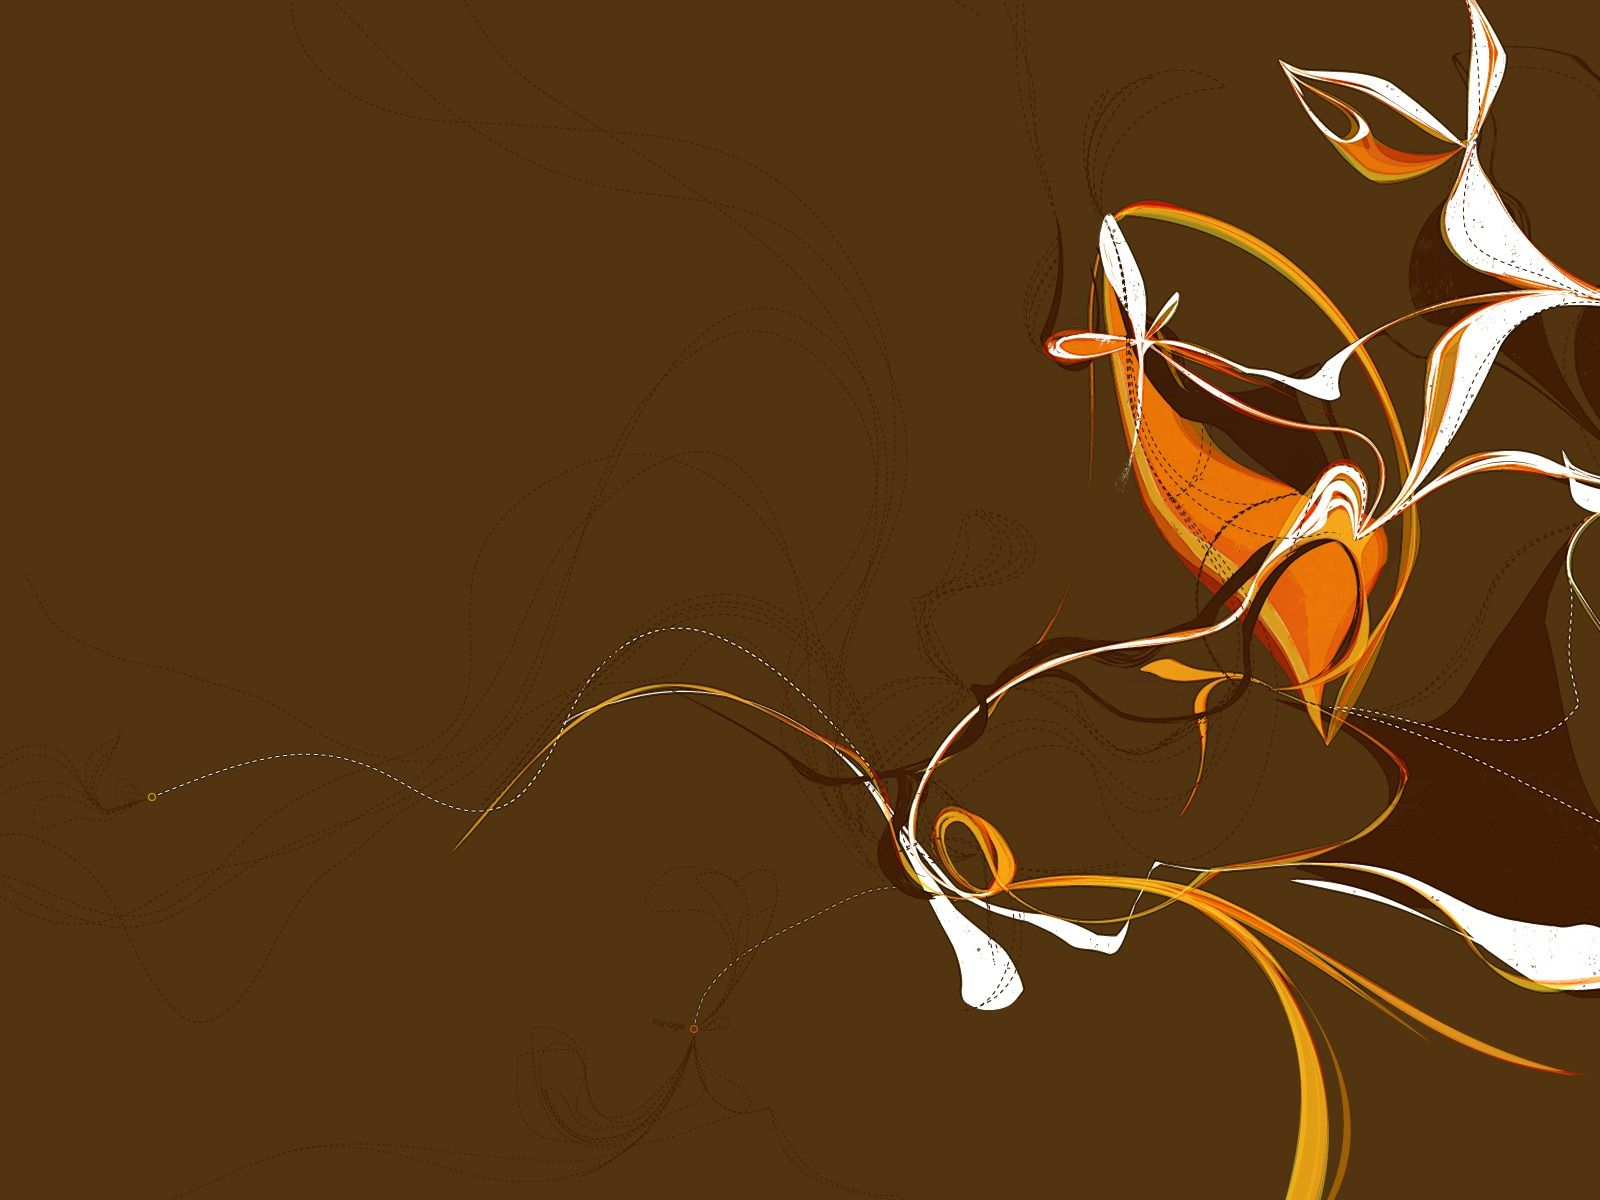 1600x1200 75+ Brown Backgrounds, Wallpapers, Images, Pictures | Design ...